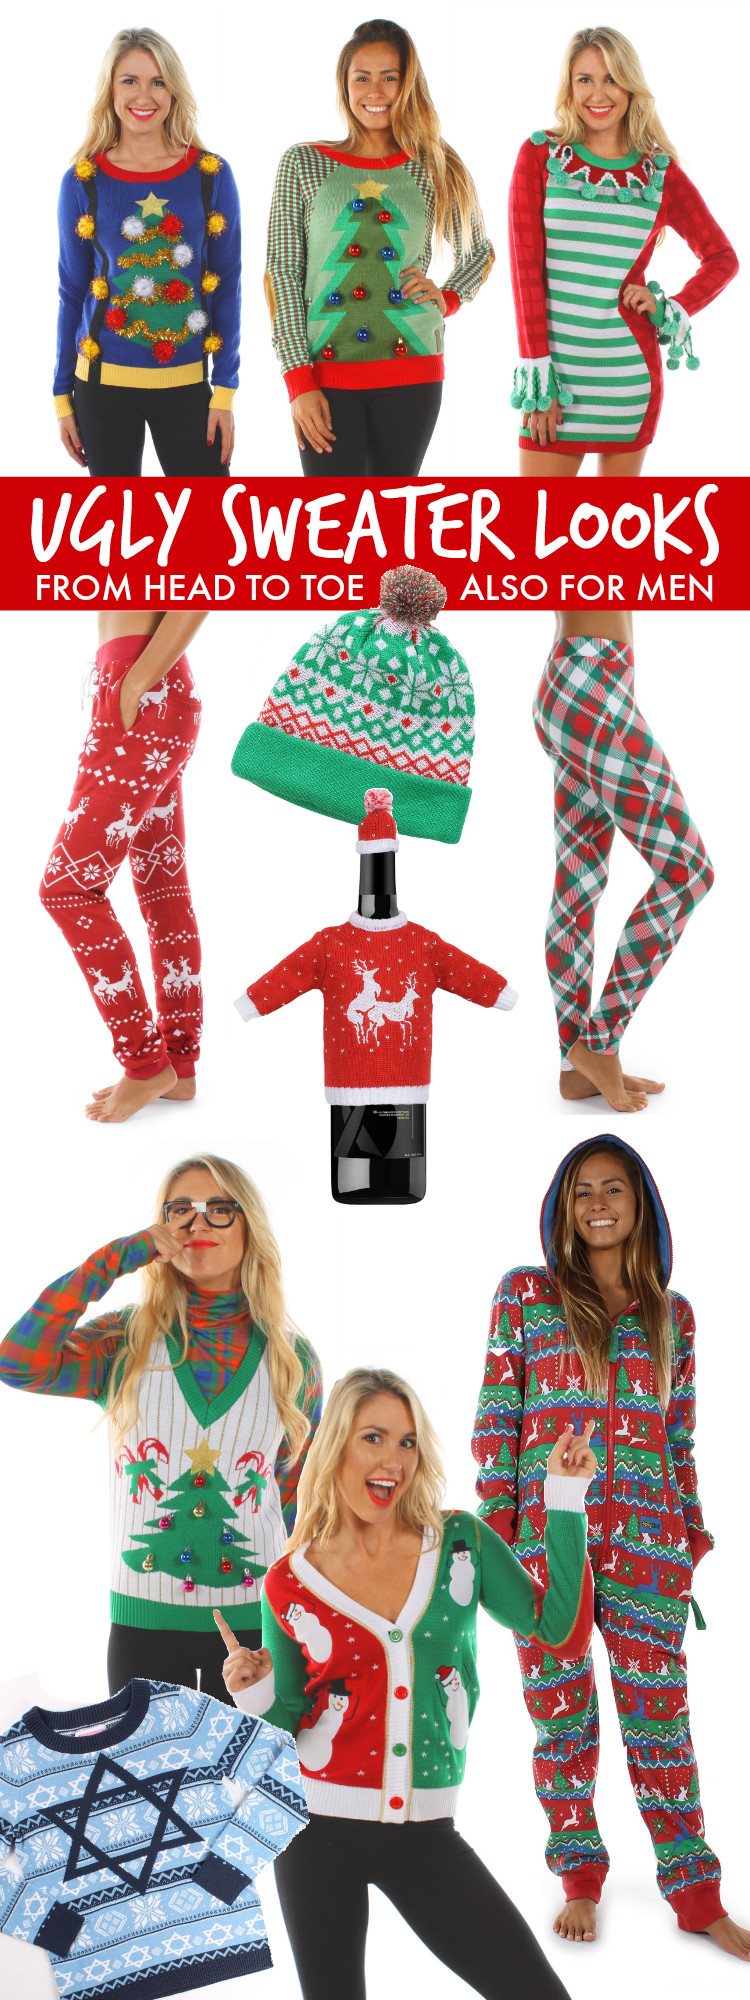 Ugly Christmas Sweater Party Decoration Ideas  Ugly Christmas Sweater Party Looks Oh My Creative